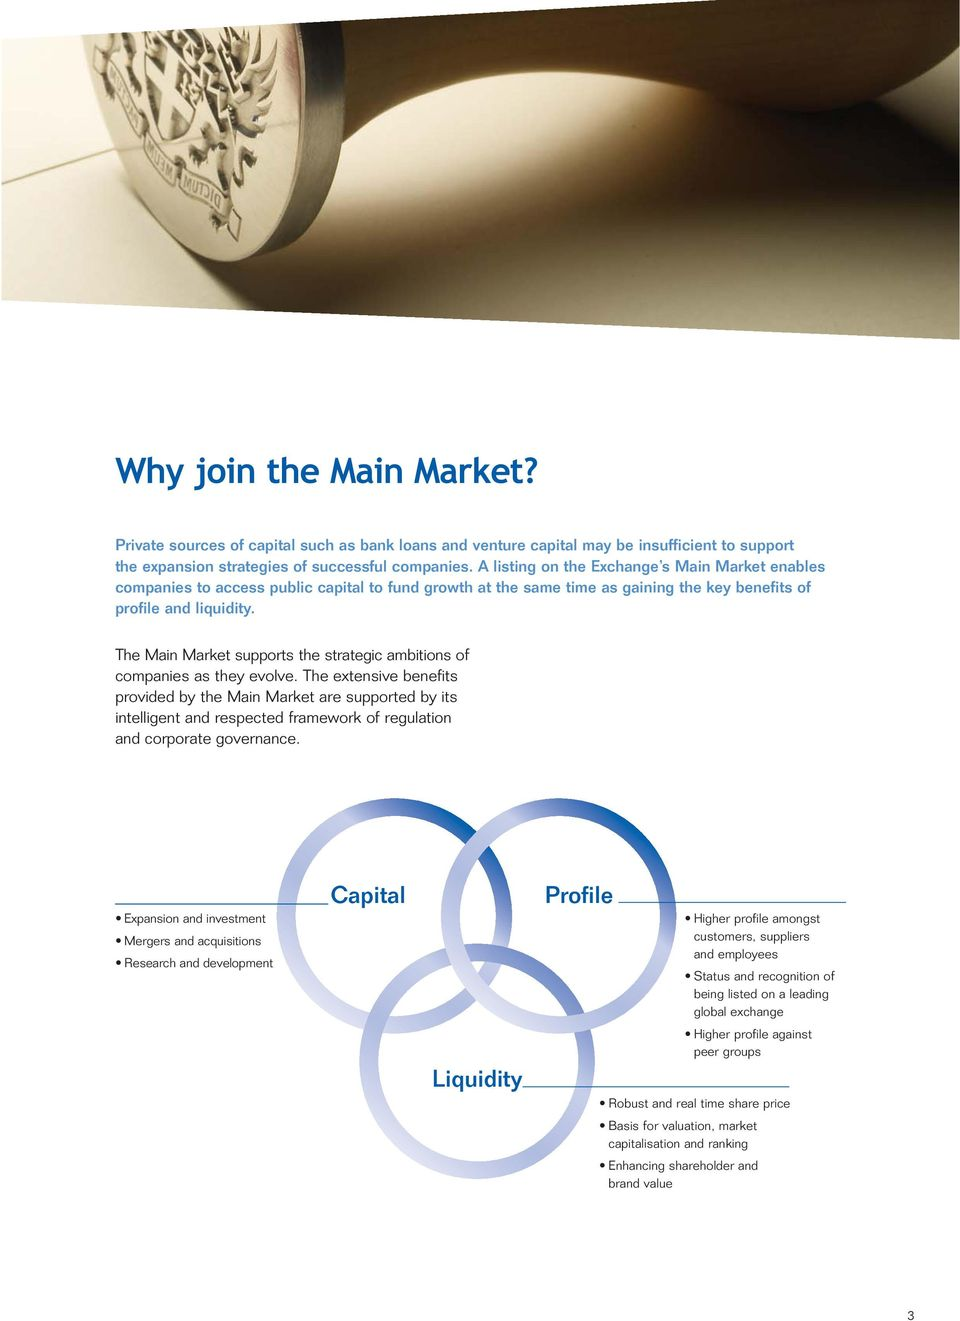 The Main Market supports the strategic ambitions of companies as they evolve.